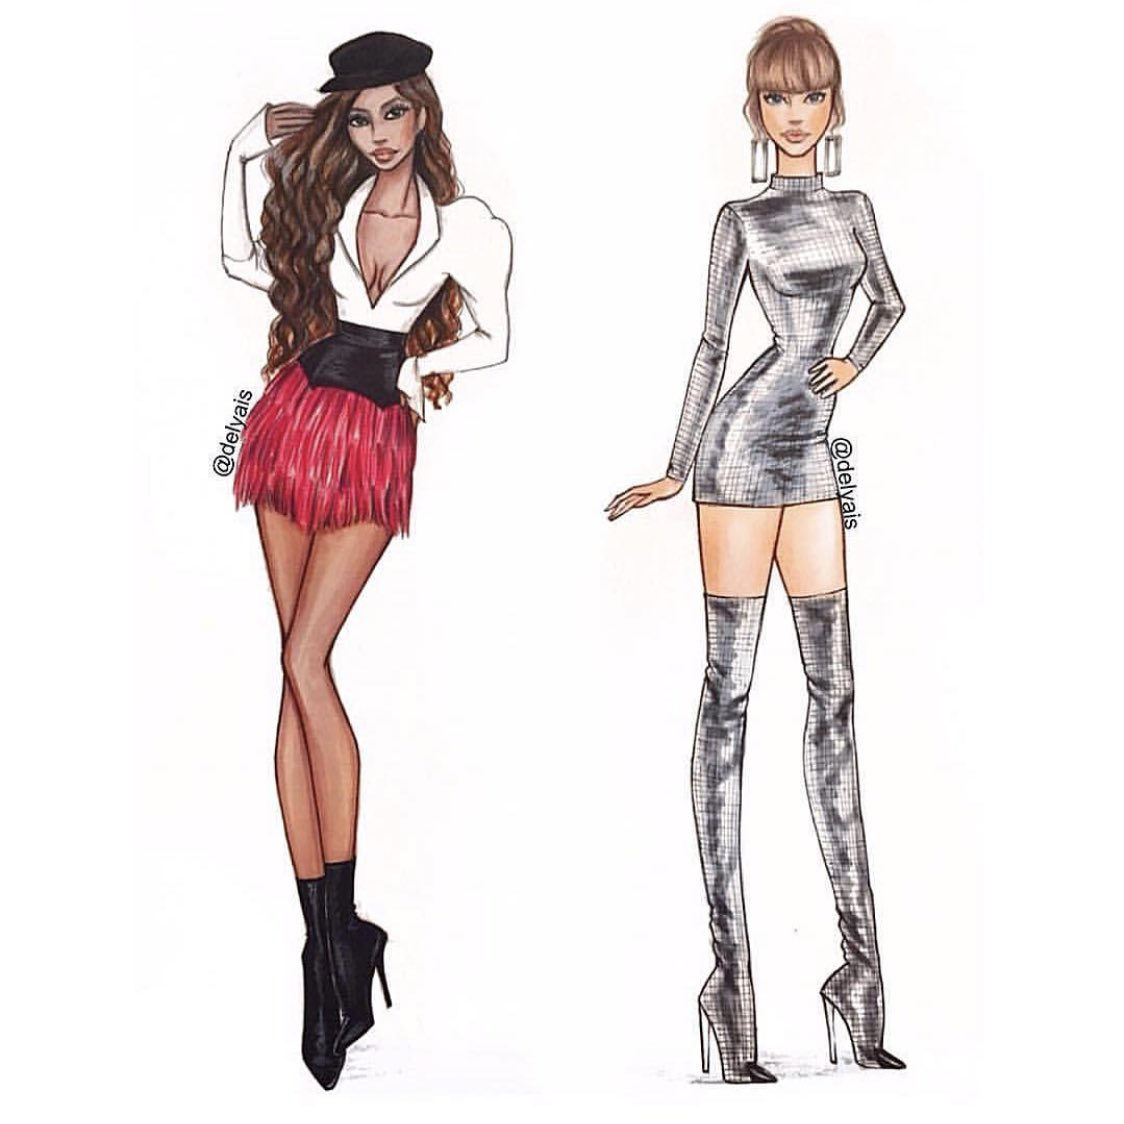 IG | tyrabanks: Hey @taylorswift13. Lil artistic throwback of us at the @amas. Love the shiny boots, girl........................Tyra/Eve <br>http://pic.twitter.com/OBbGYkkvWn